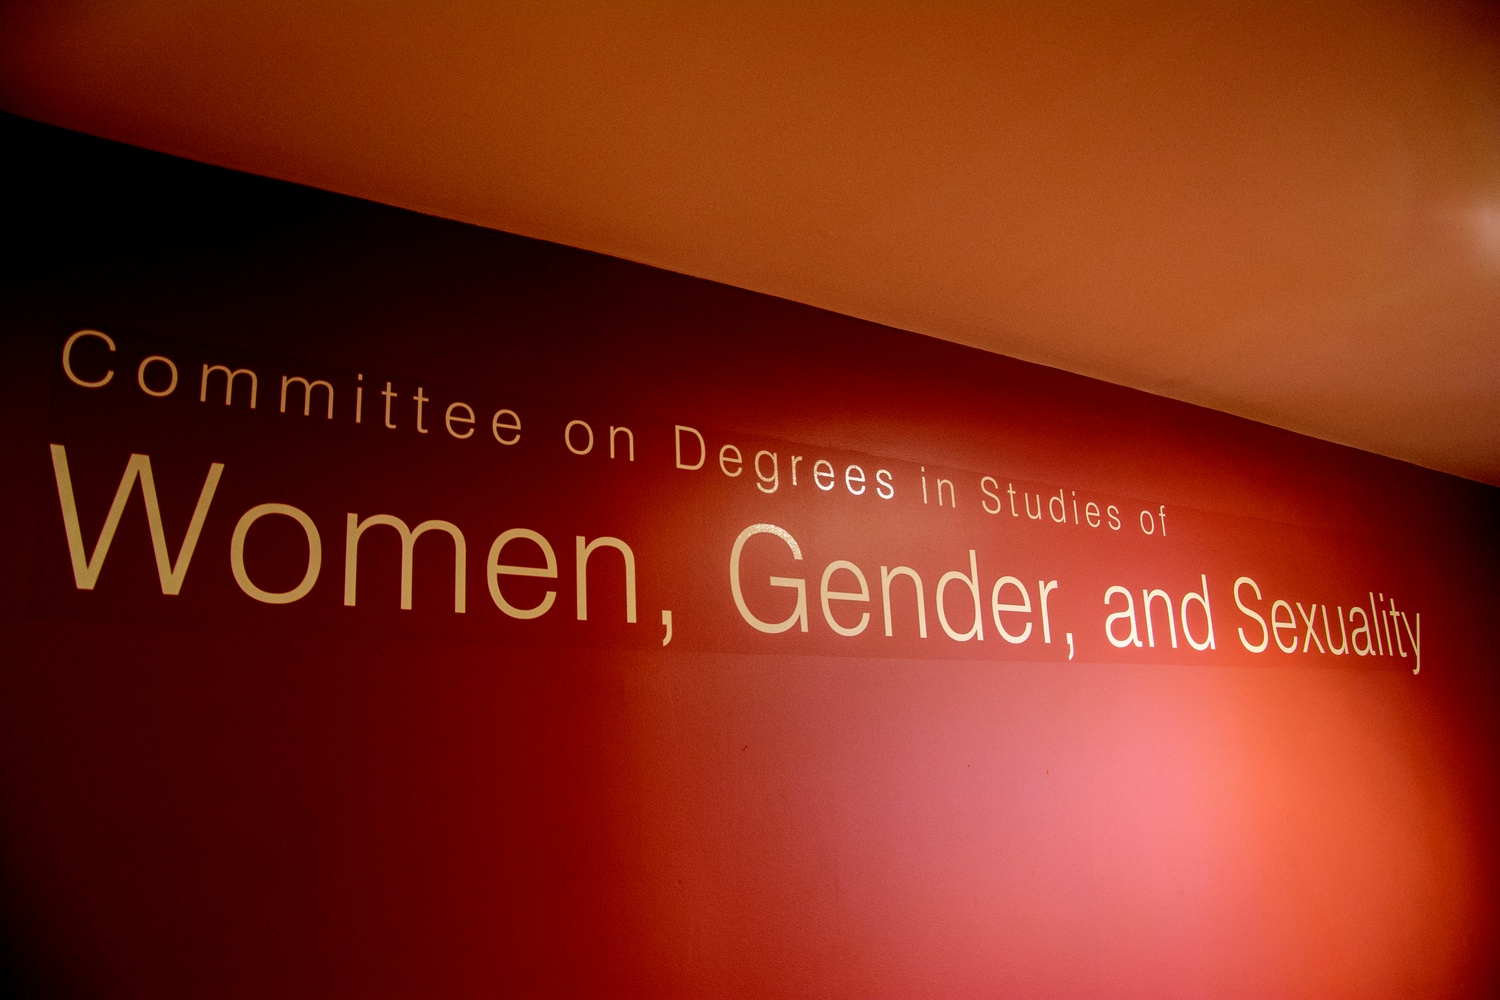 The Women, Gender, and Sexuality Studies committee offices in the basement of Boylston Hall.